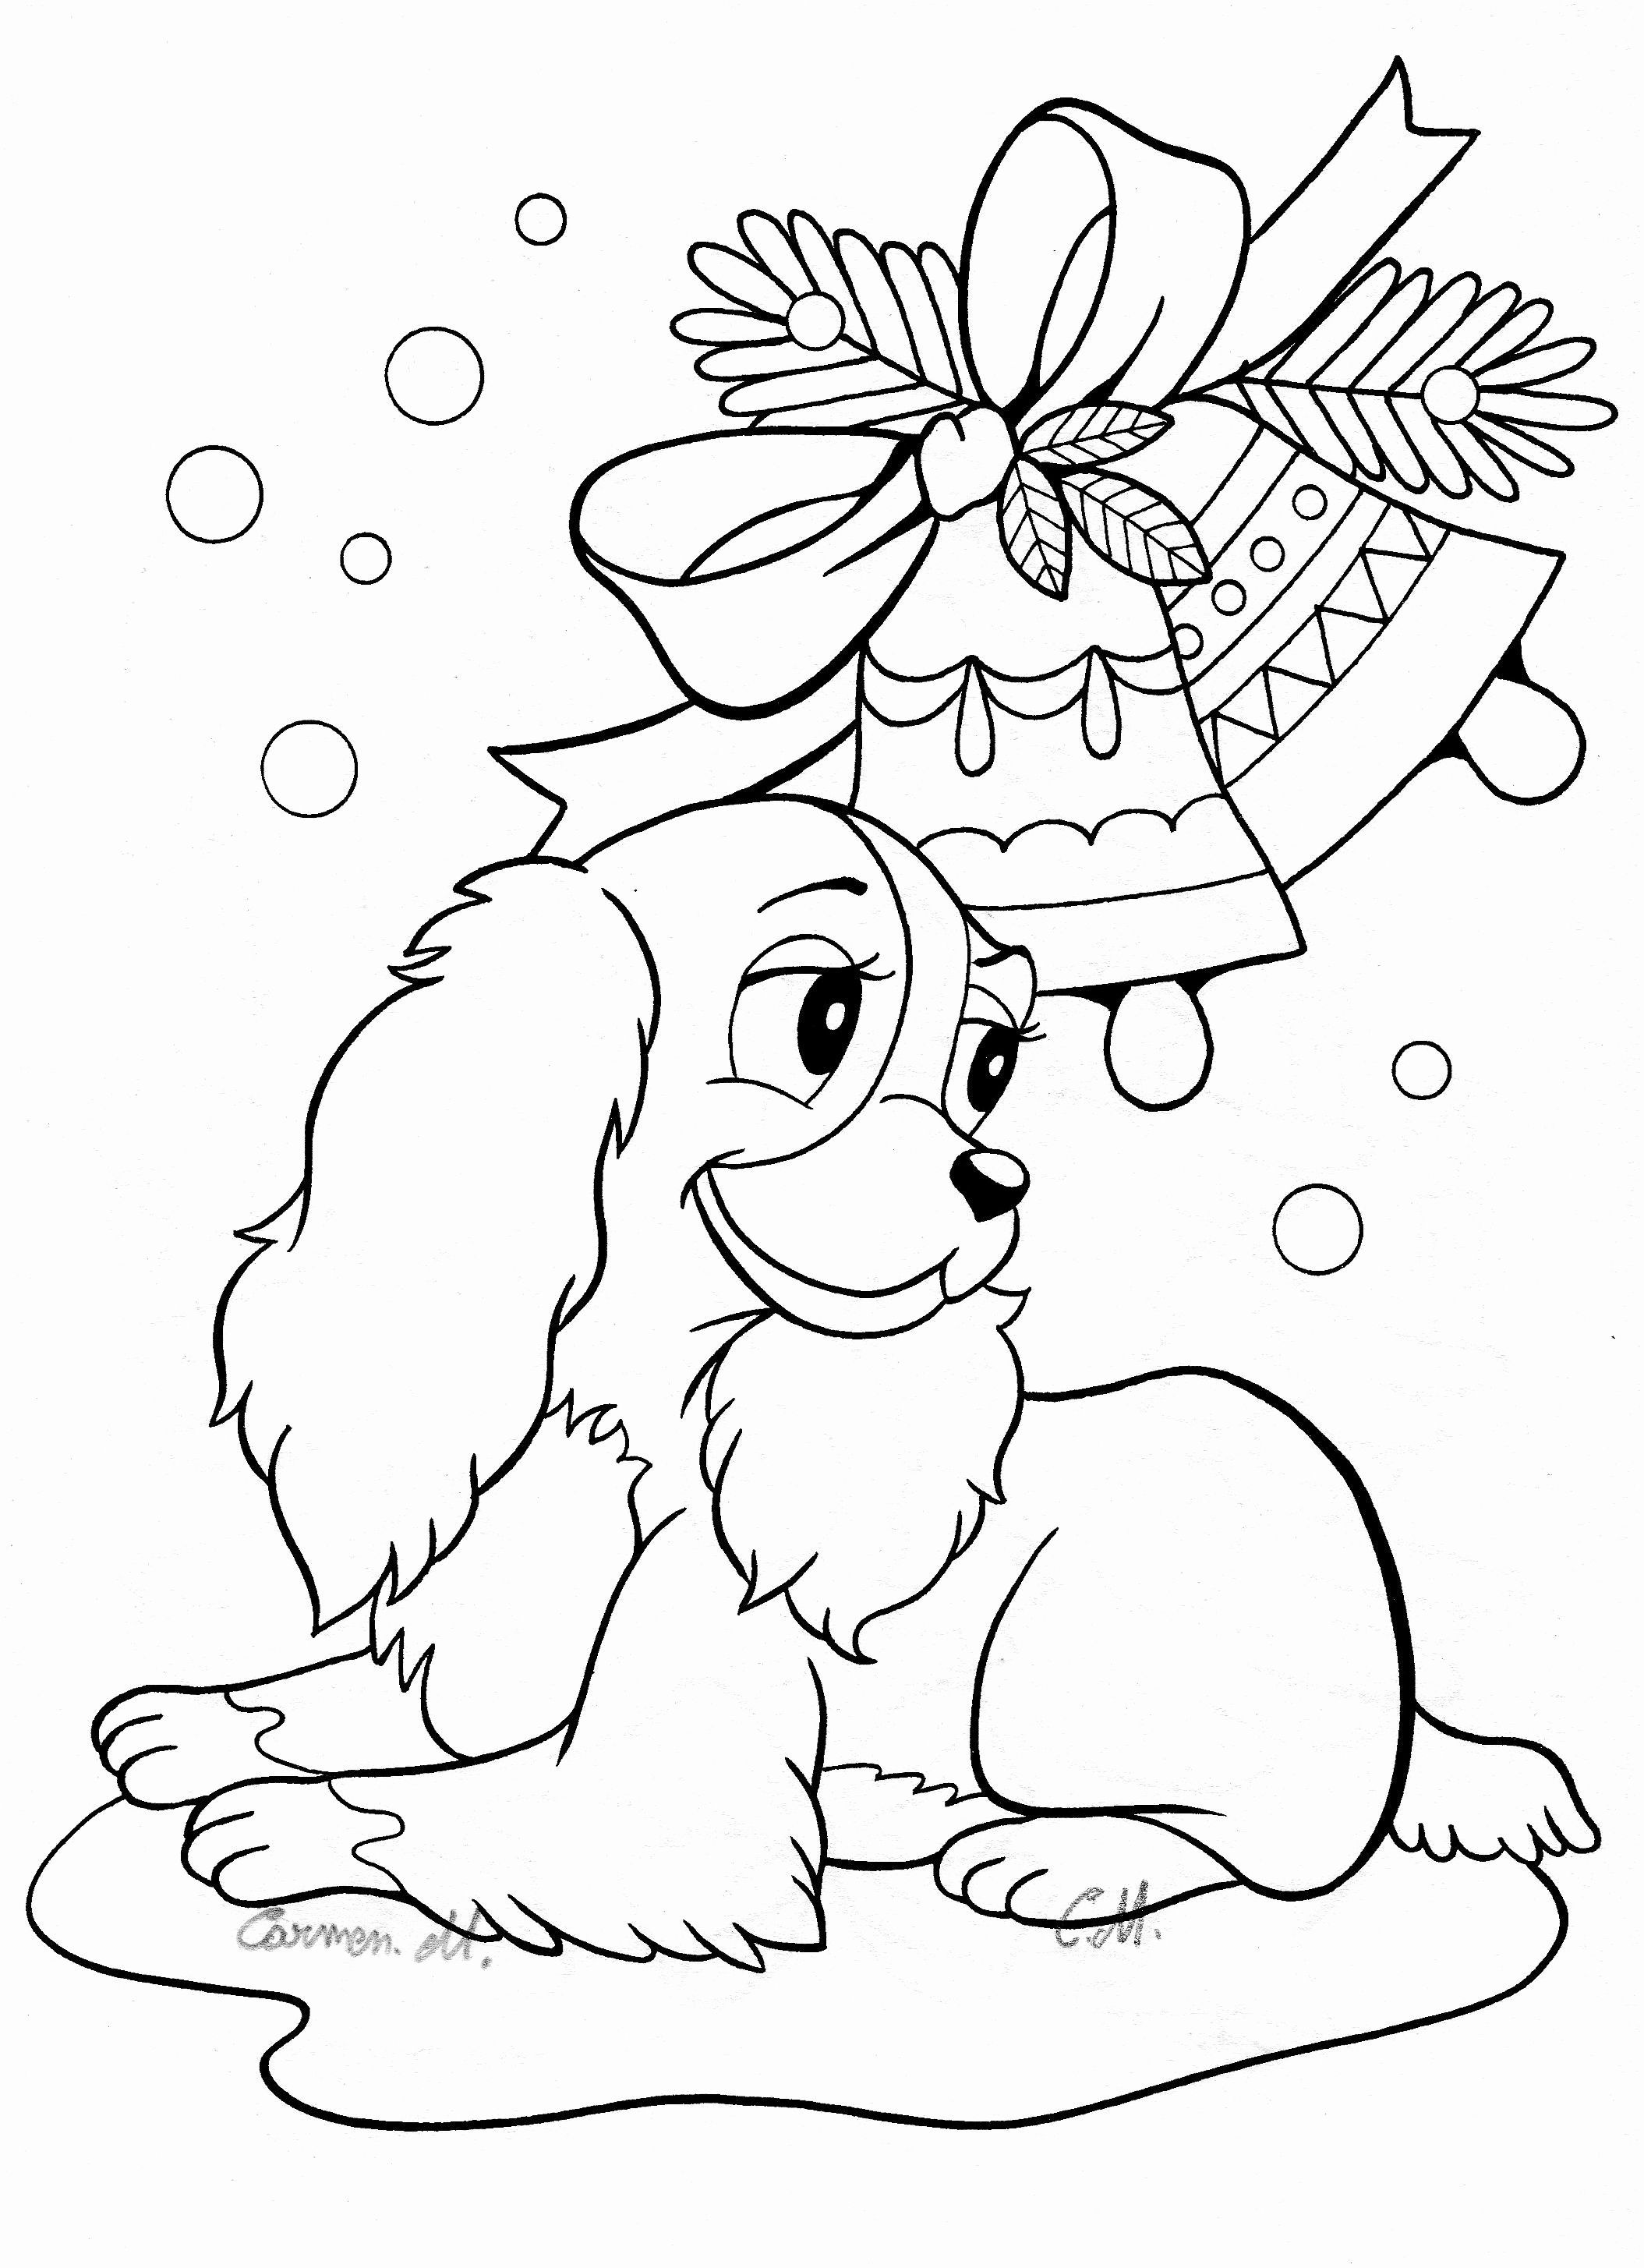 Pin By Susan Yates On My Saves In 2021 Printable Christmas Coloring Pages Mermaid Coloring Pages Puppy Coloring Pages